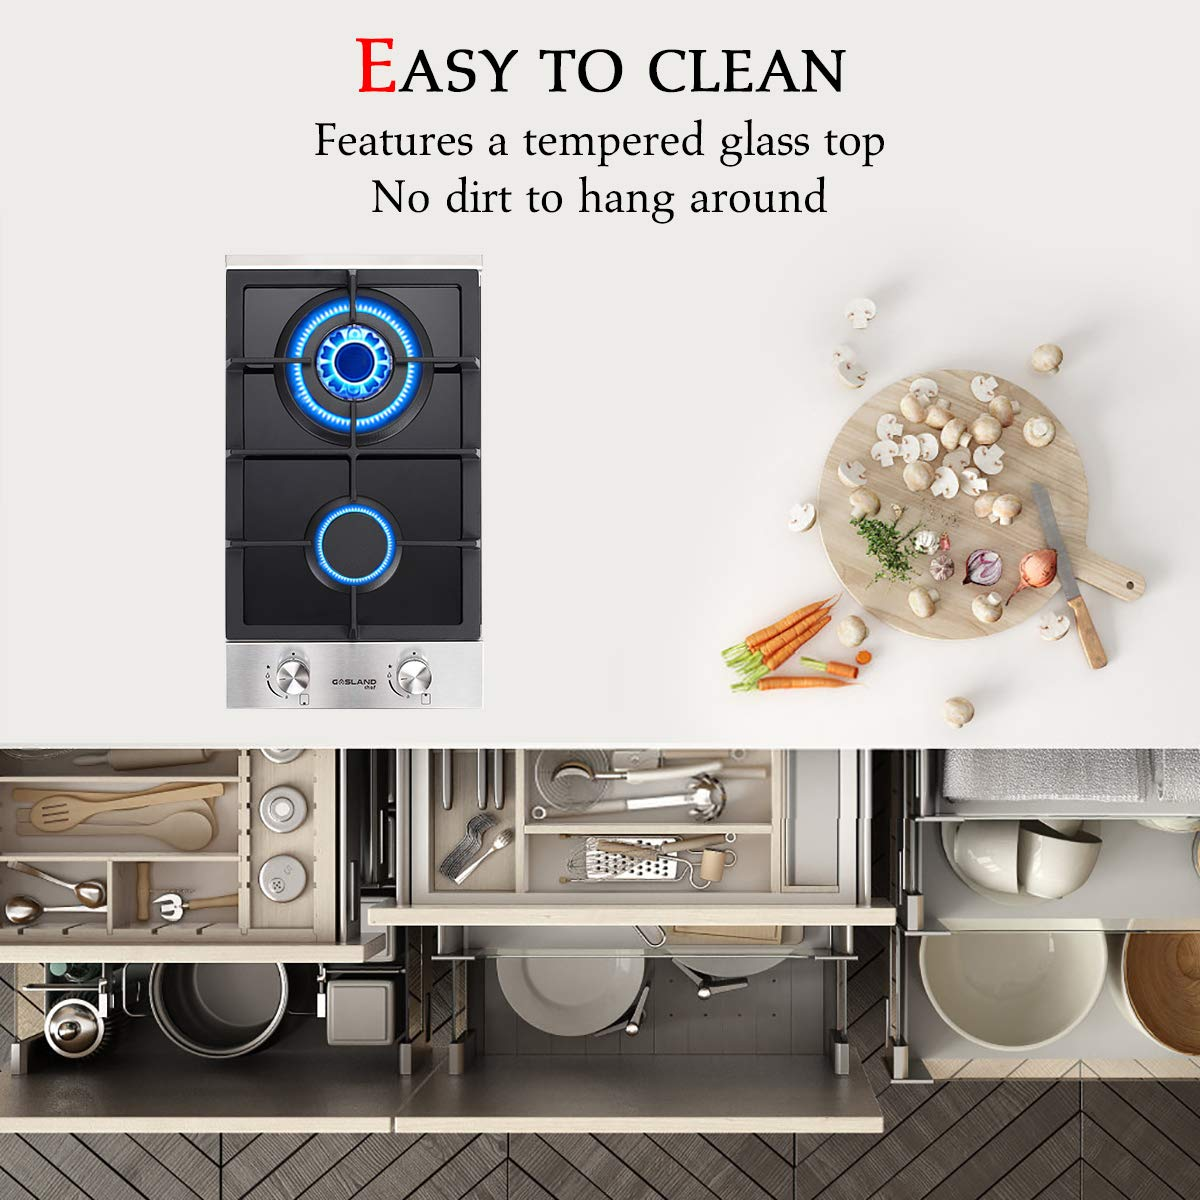 Gas Stove Top With 2 Sealed Burners ETL Safety Certified Gasland chef GH30SF Built-in Gas Stove Top Gas Cooktop Thermocouple Protection Easy To Clean Stainless Steel LPG Natural Gas Cooktop 12